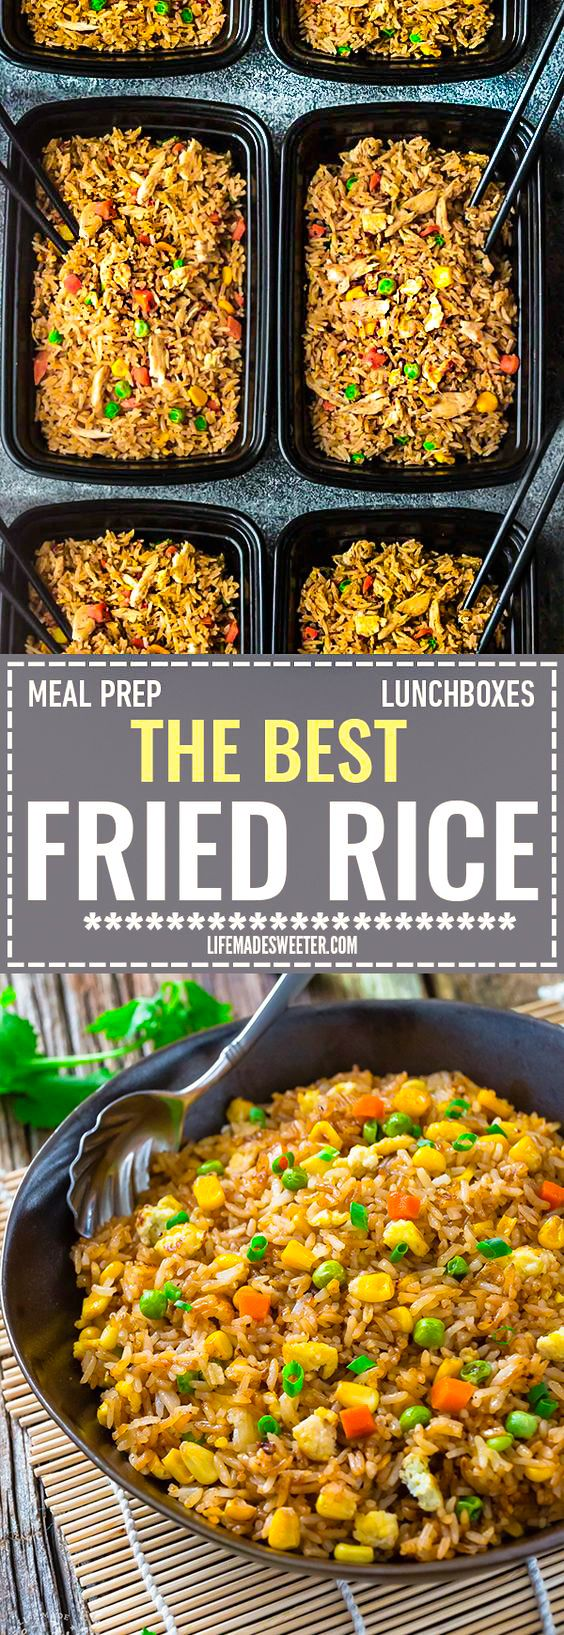 Absolutely the BEST Chinese Fried Rice - the perfect easy weeknight dish. With the most authentic flavors! My father was the head chef at a top Hong Kong Chinese restaurant and this was his specialty! So delicious and way better than any takeout! Plus a step-by-step video! Make it on Sunday for weekly meal prep for or leftovers are great for school lunchboxes or work lunch bowls.